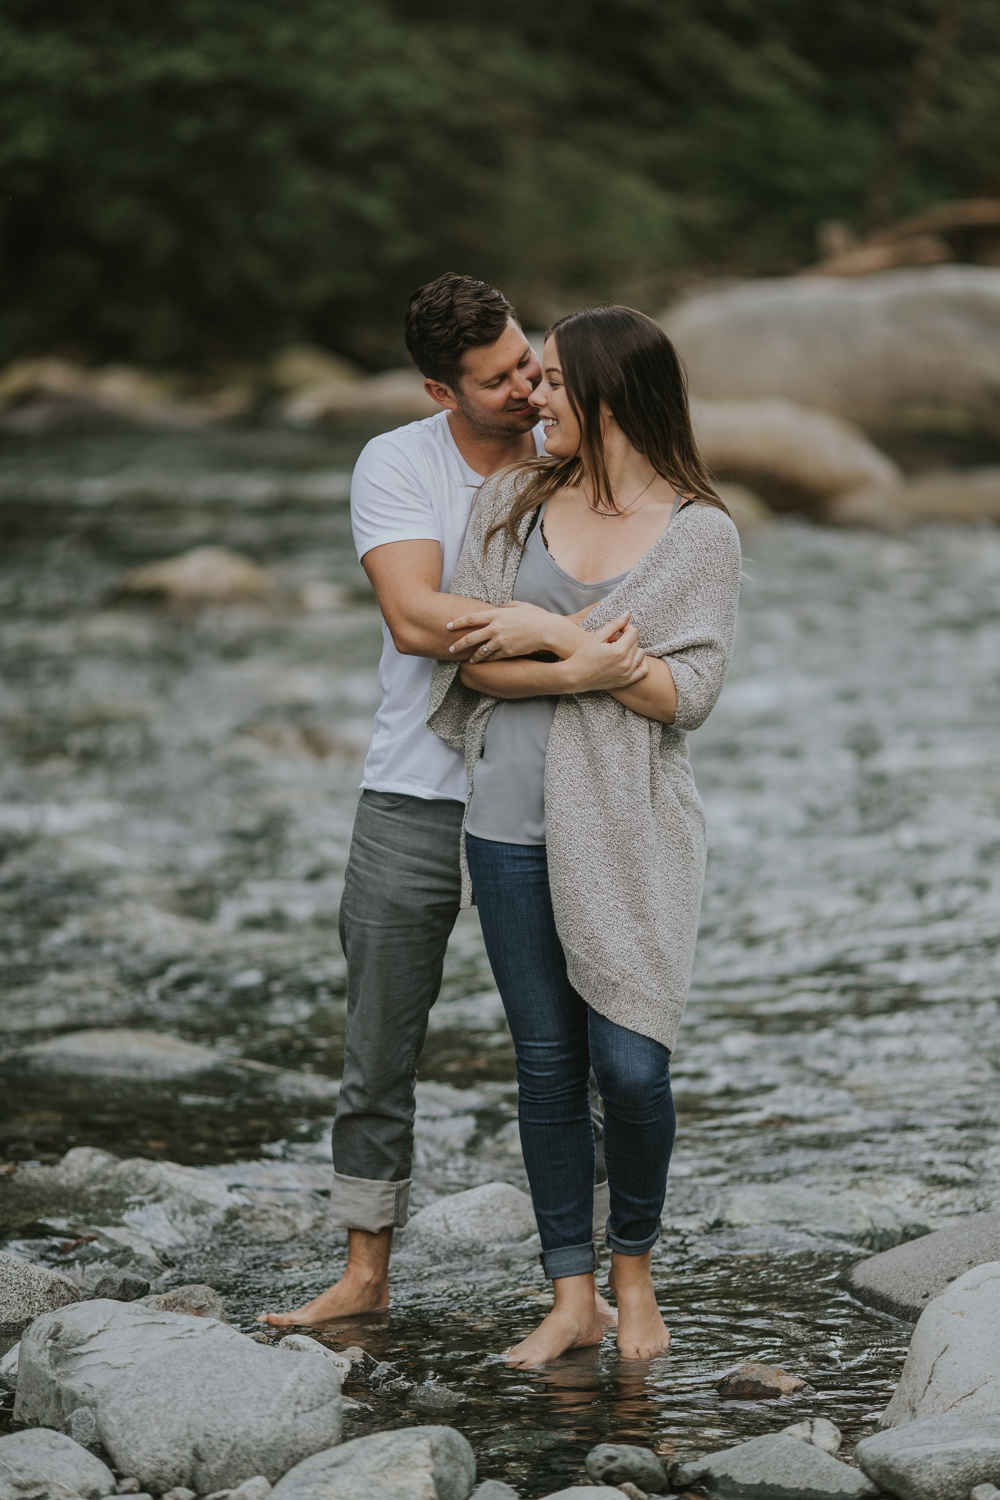 Danielle-Kevin-Engagement-Danaea-Li-Photography-Forest-0058.jpg